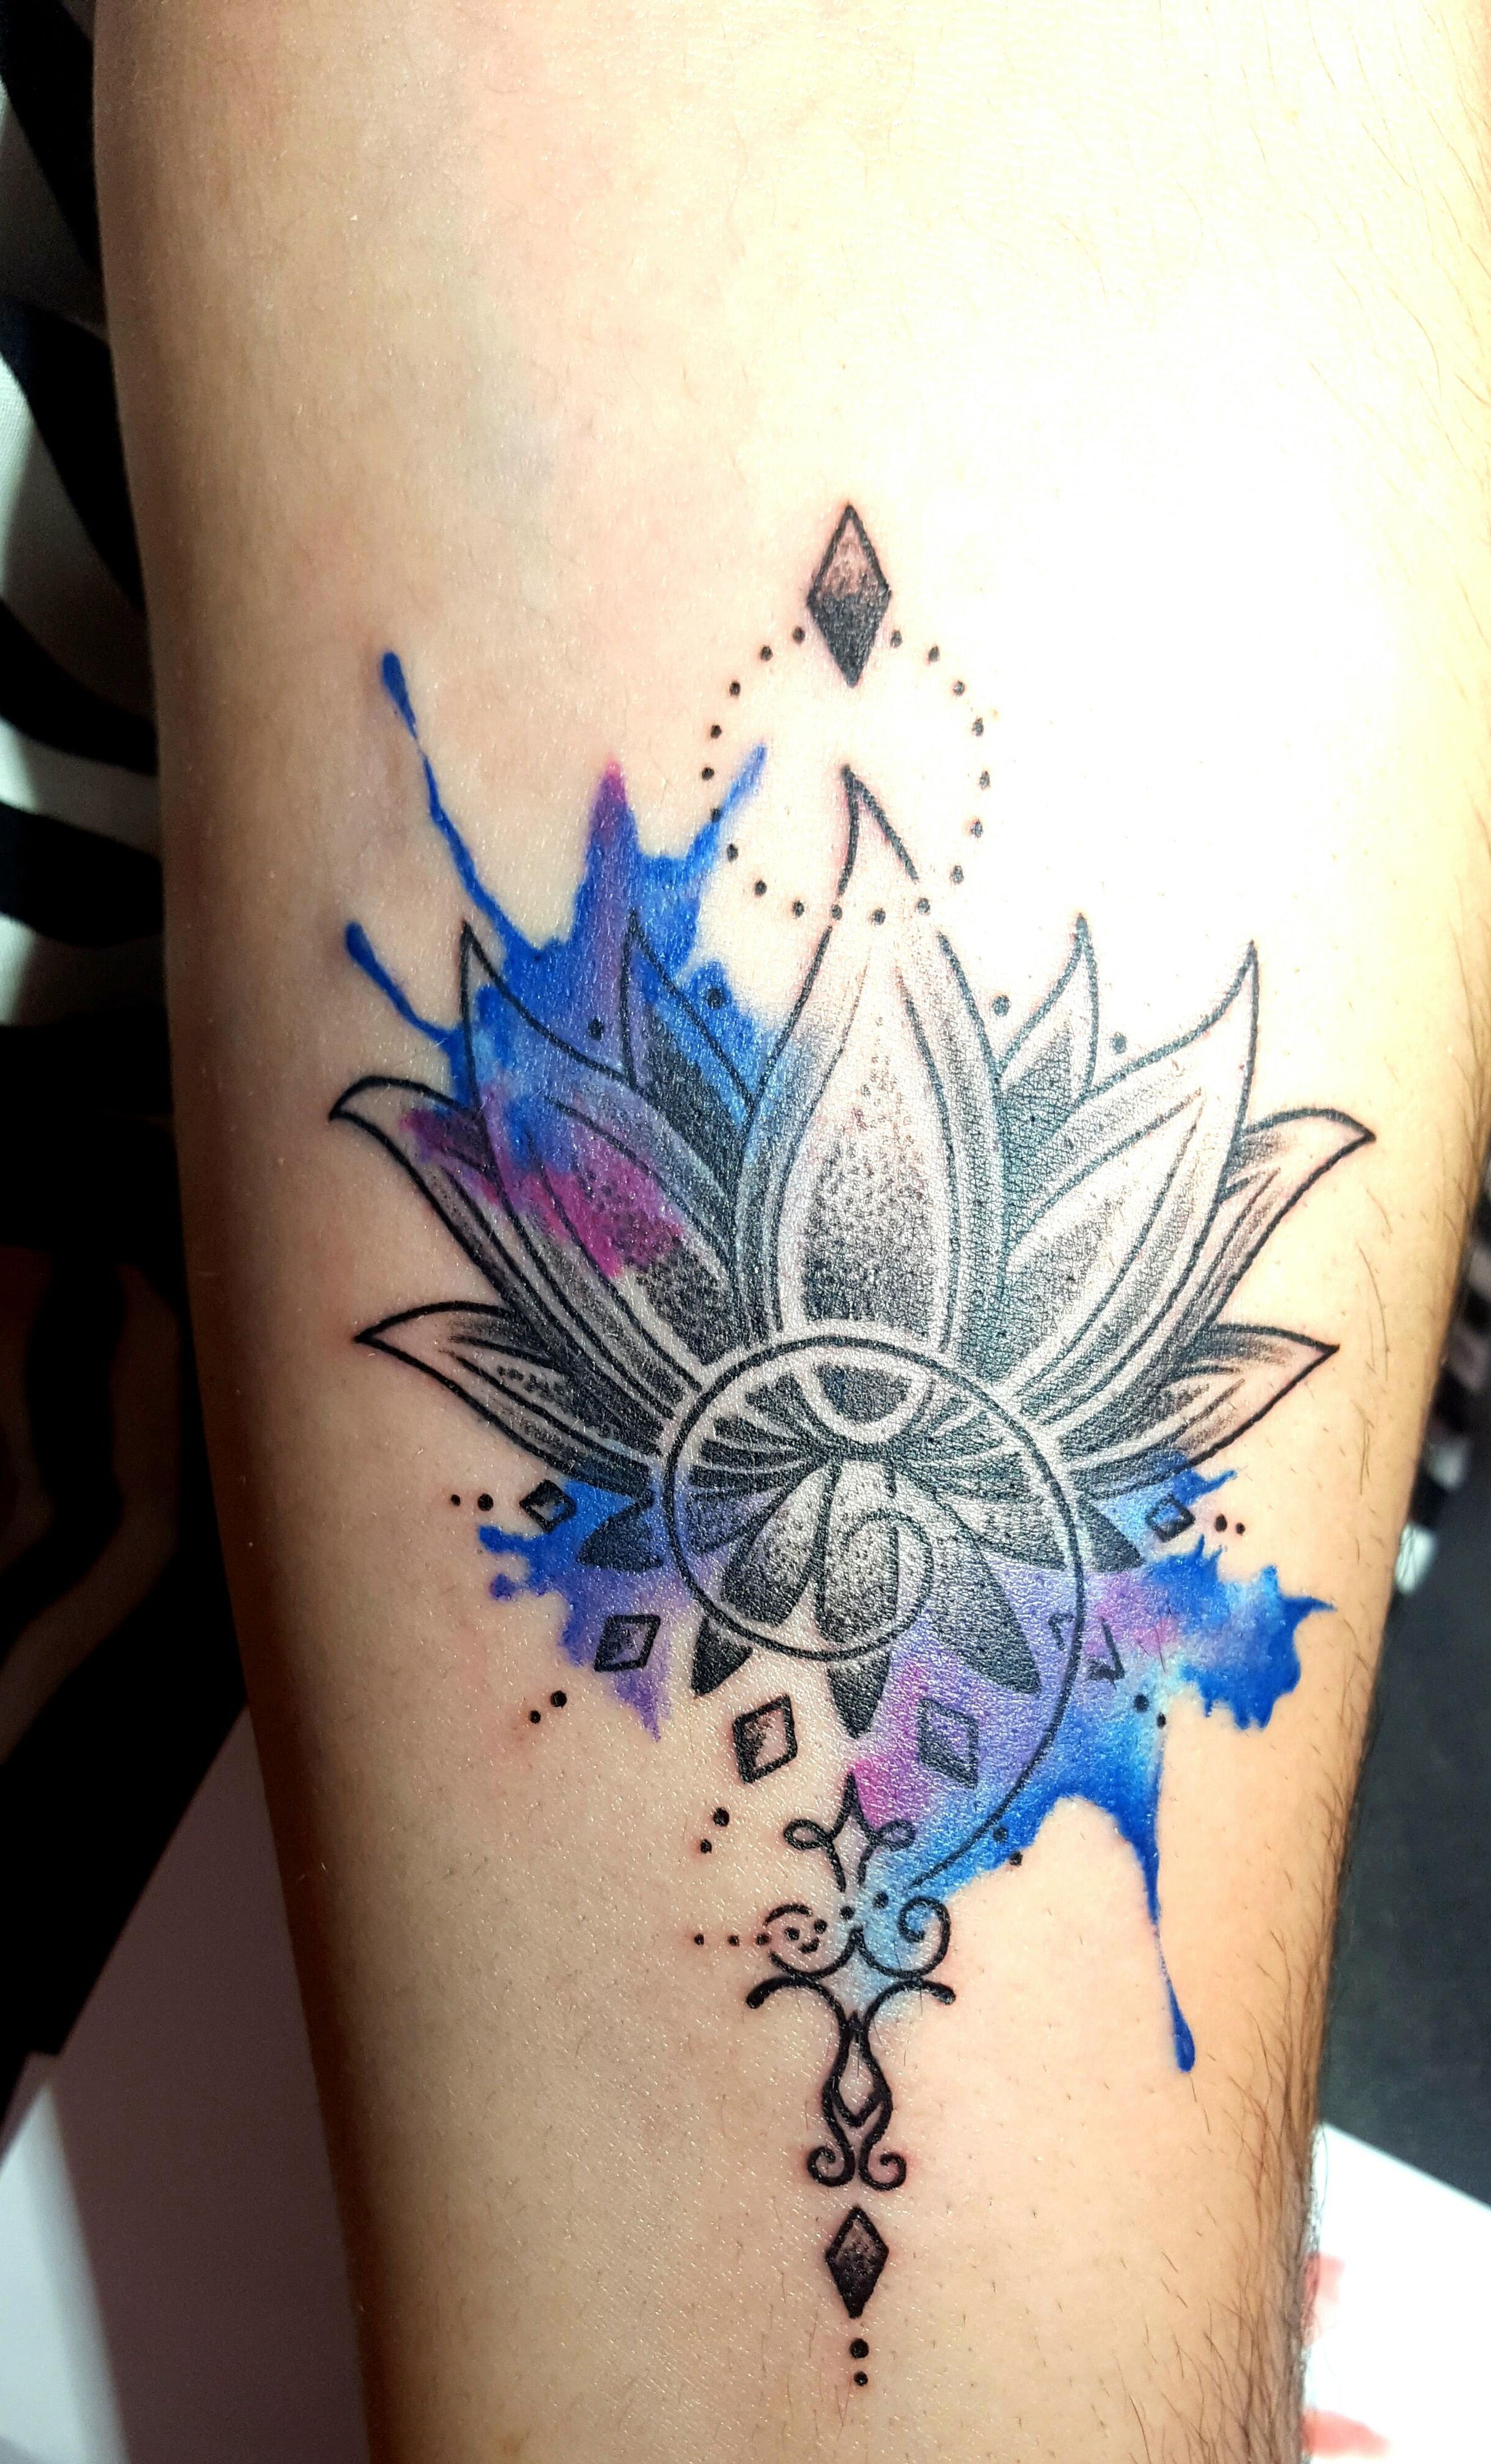 Watercolour Black Lotus Forearm Tattoo By Ines Vital Lucky 13 Albufeira Portugal Floral Tattoo Design Flower Tattoo Designs Lotus Flower Tattoo Design